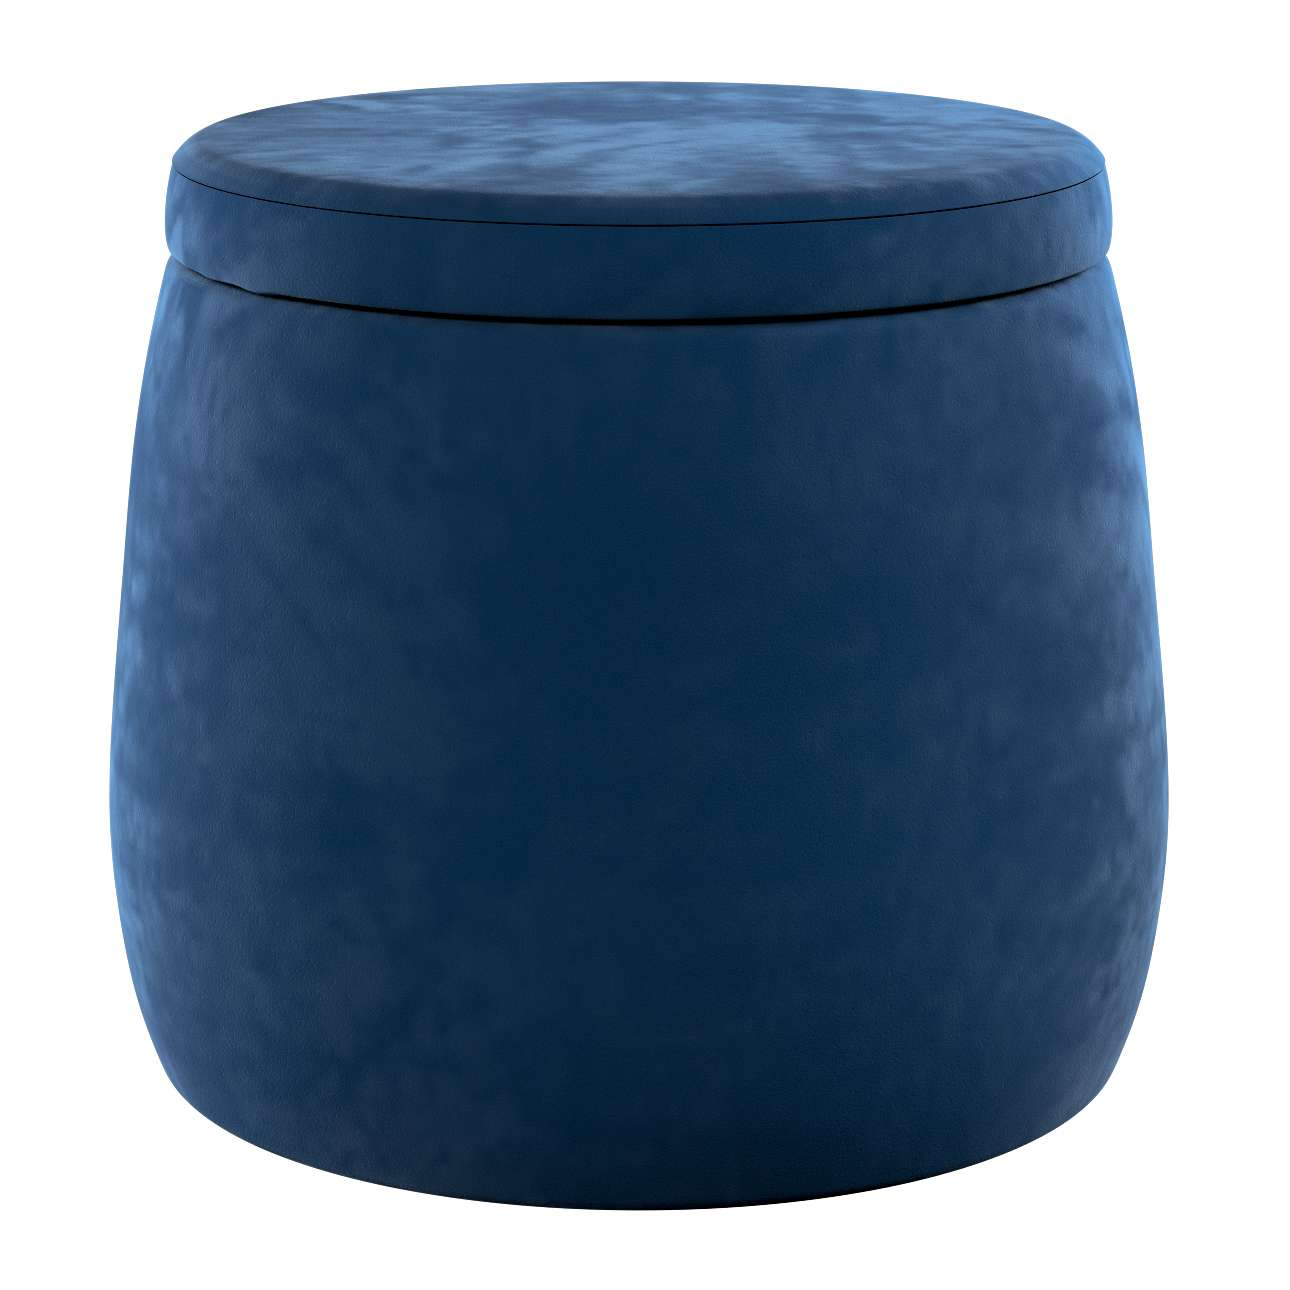 Candy Jar pouf in collection Posh Velvet, fabric: 704-29